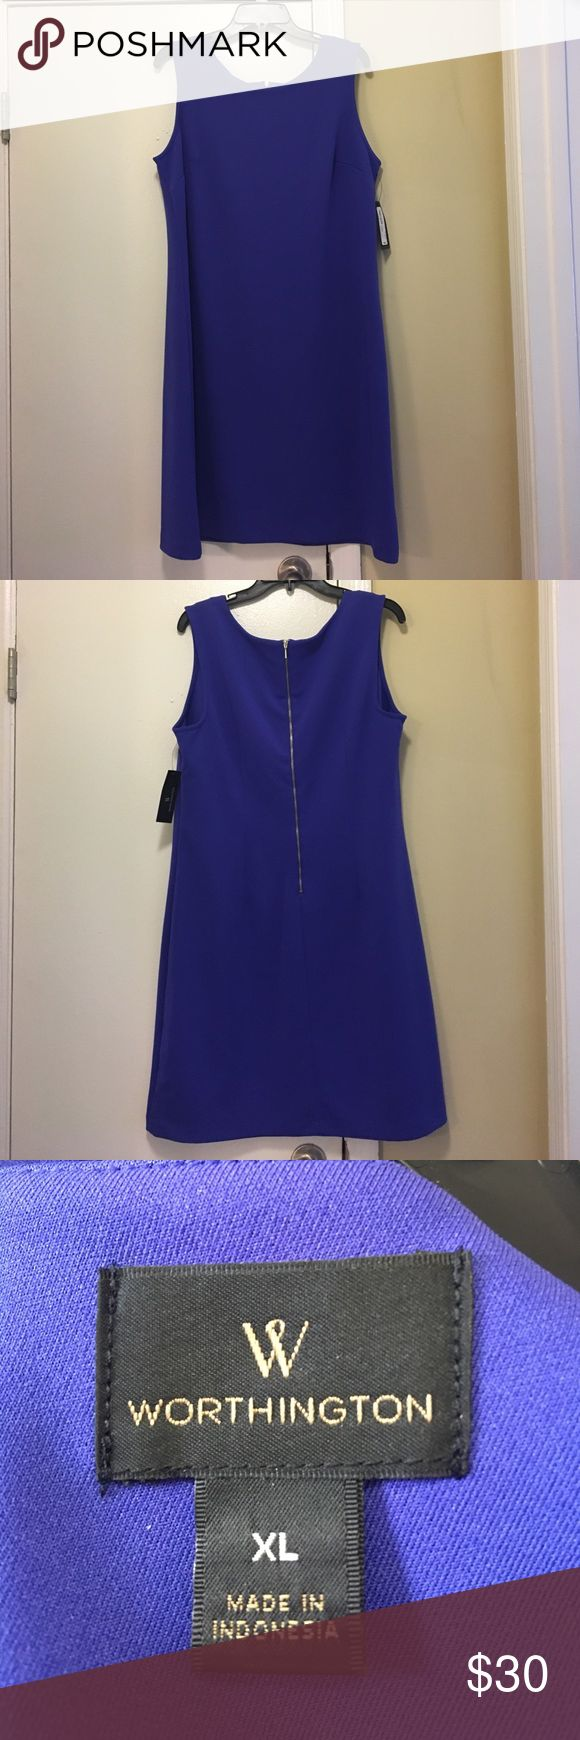 Worthington Rich Royal Dress Size XL This is another perfect-for-work dress! It is 93% polyester and 7% spandex so it's very comfortable. It has an exposed zipper in the back and no slit. It is not lined but does not need it. It hits at the knee. Worthington Dresses